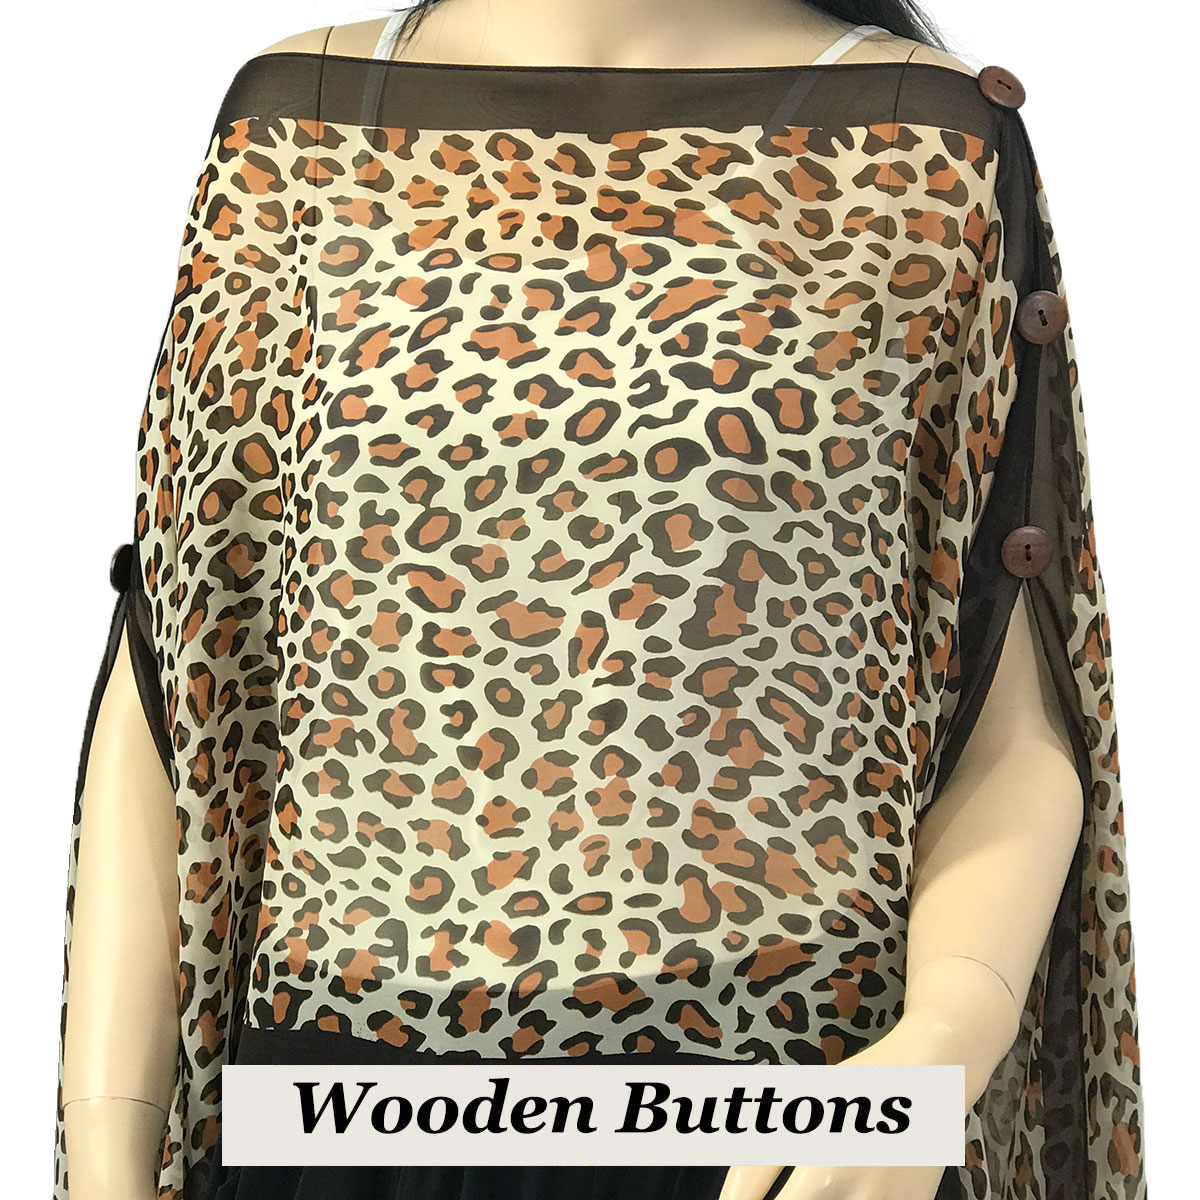 Silky Button Poncho/Cape (Six Button Chiffon) - Brown Wood Buttons #104 Brown (Cheetah)